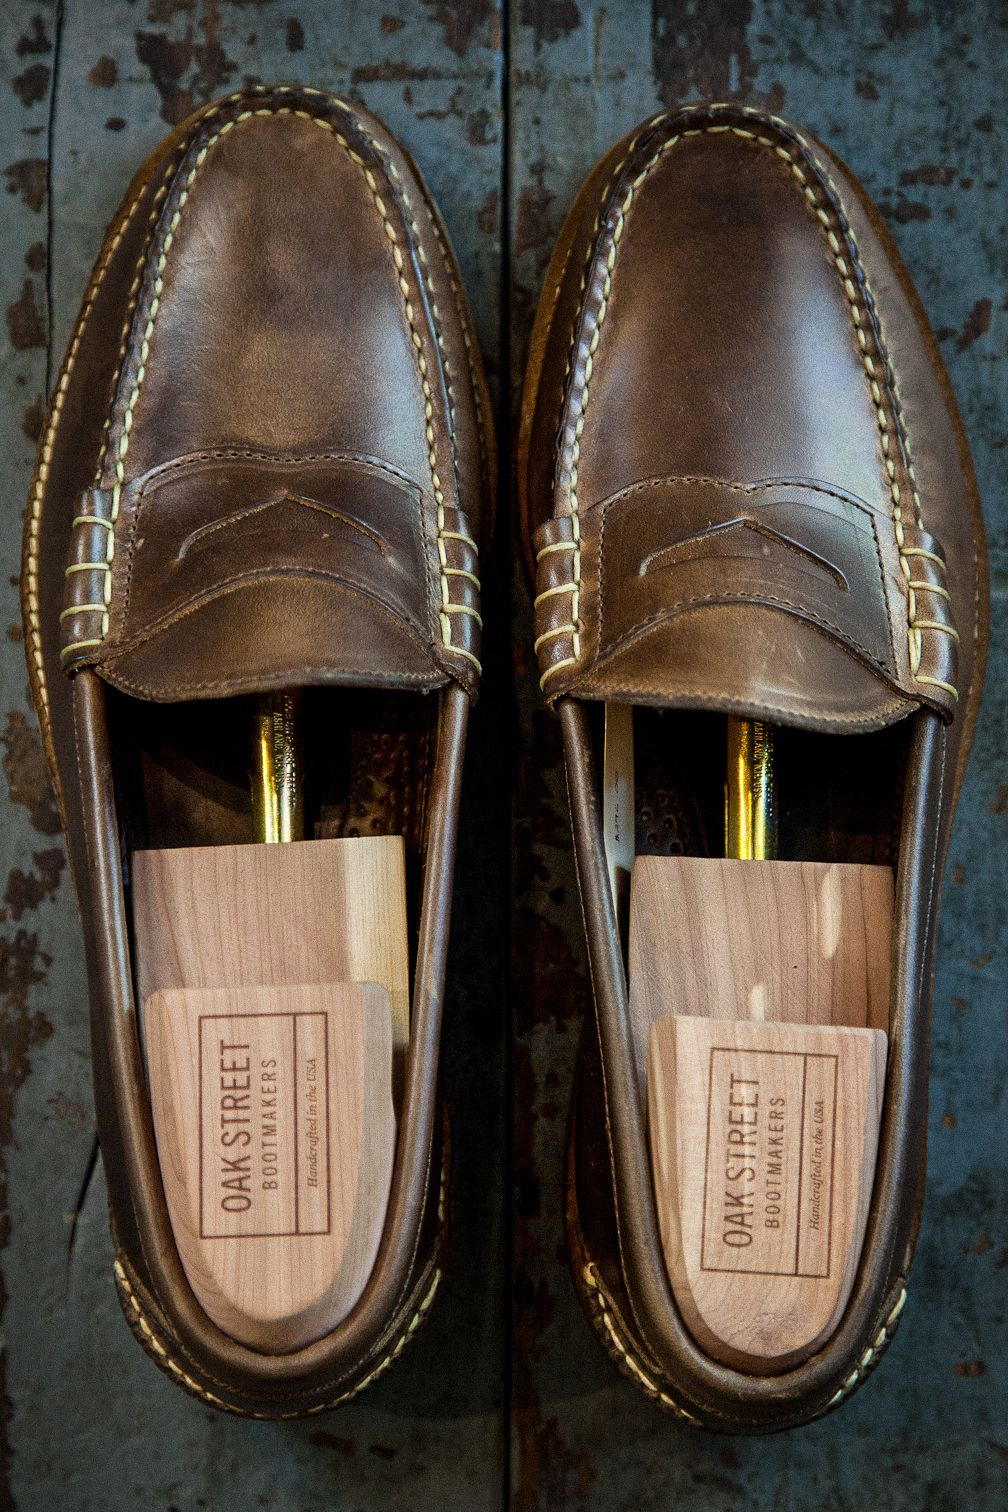 a1f9e36faf2 independencechicago  Oak Street Bootmakers Nautral Beefroll Penny Loafers  available at Independence.